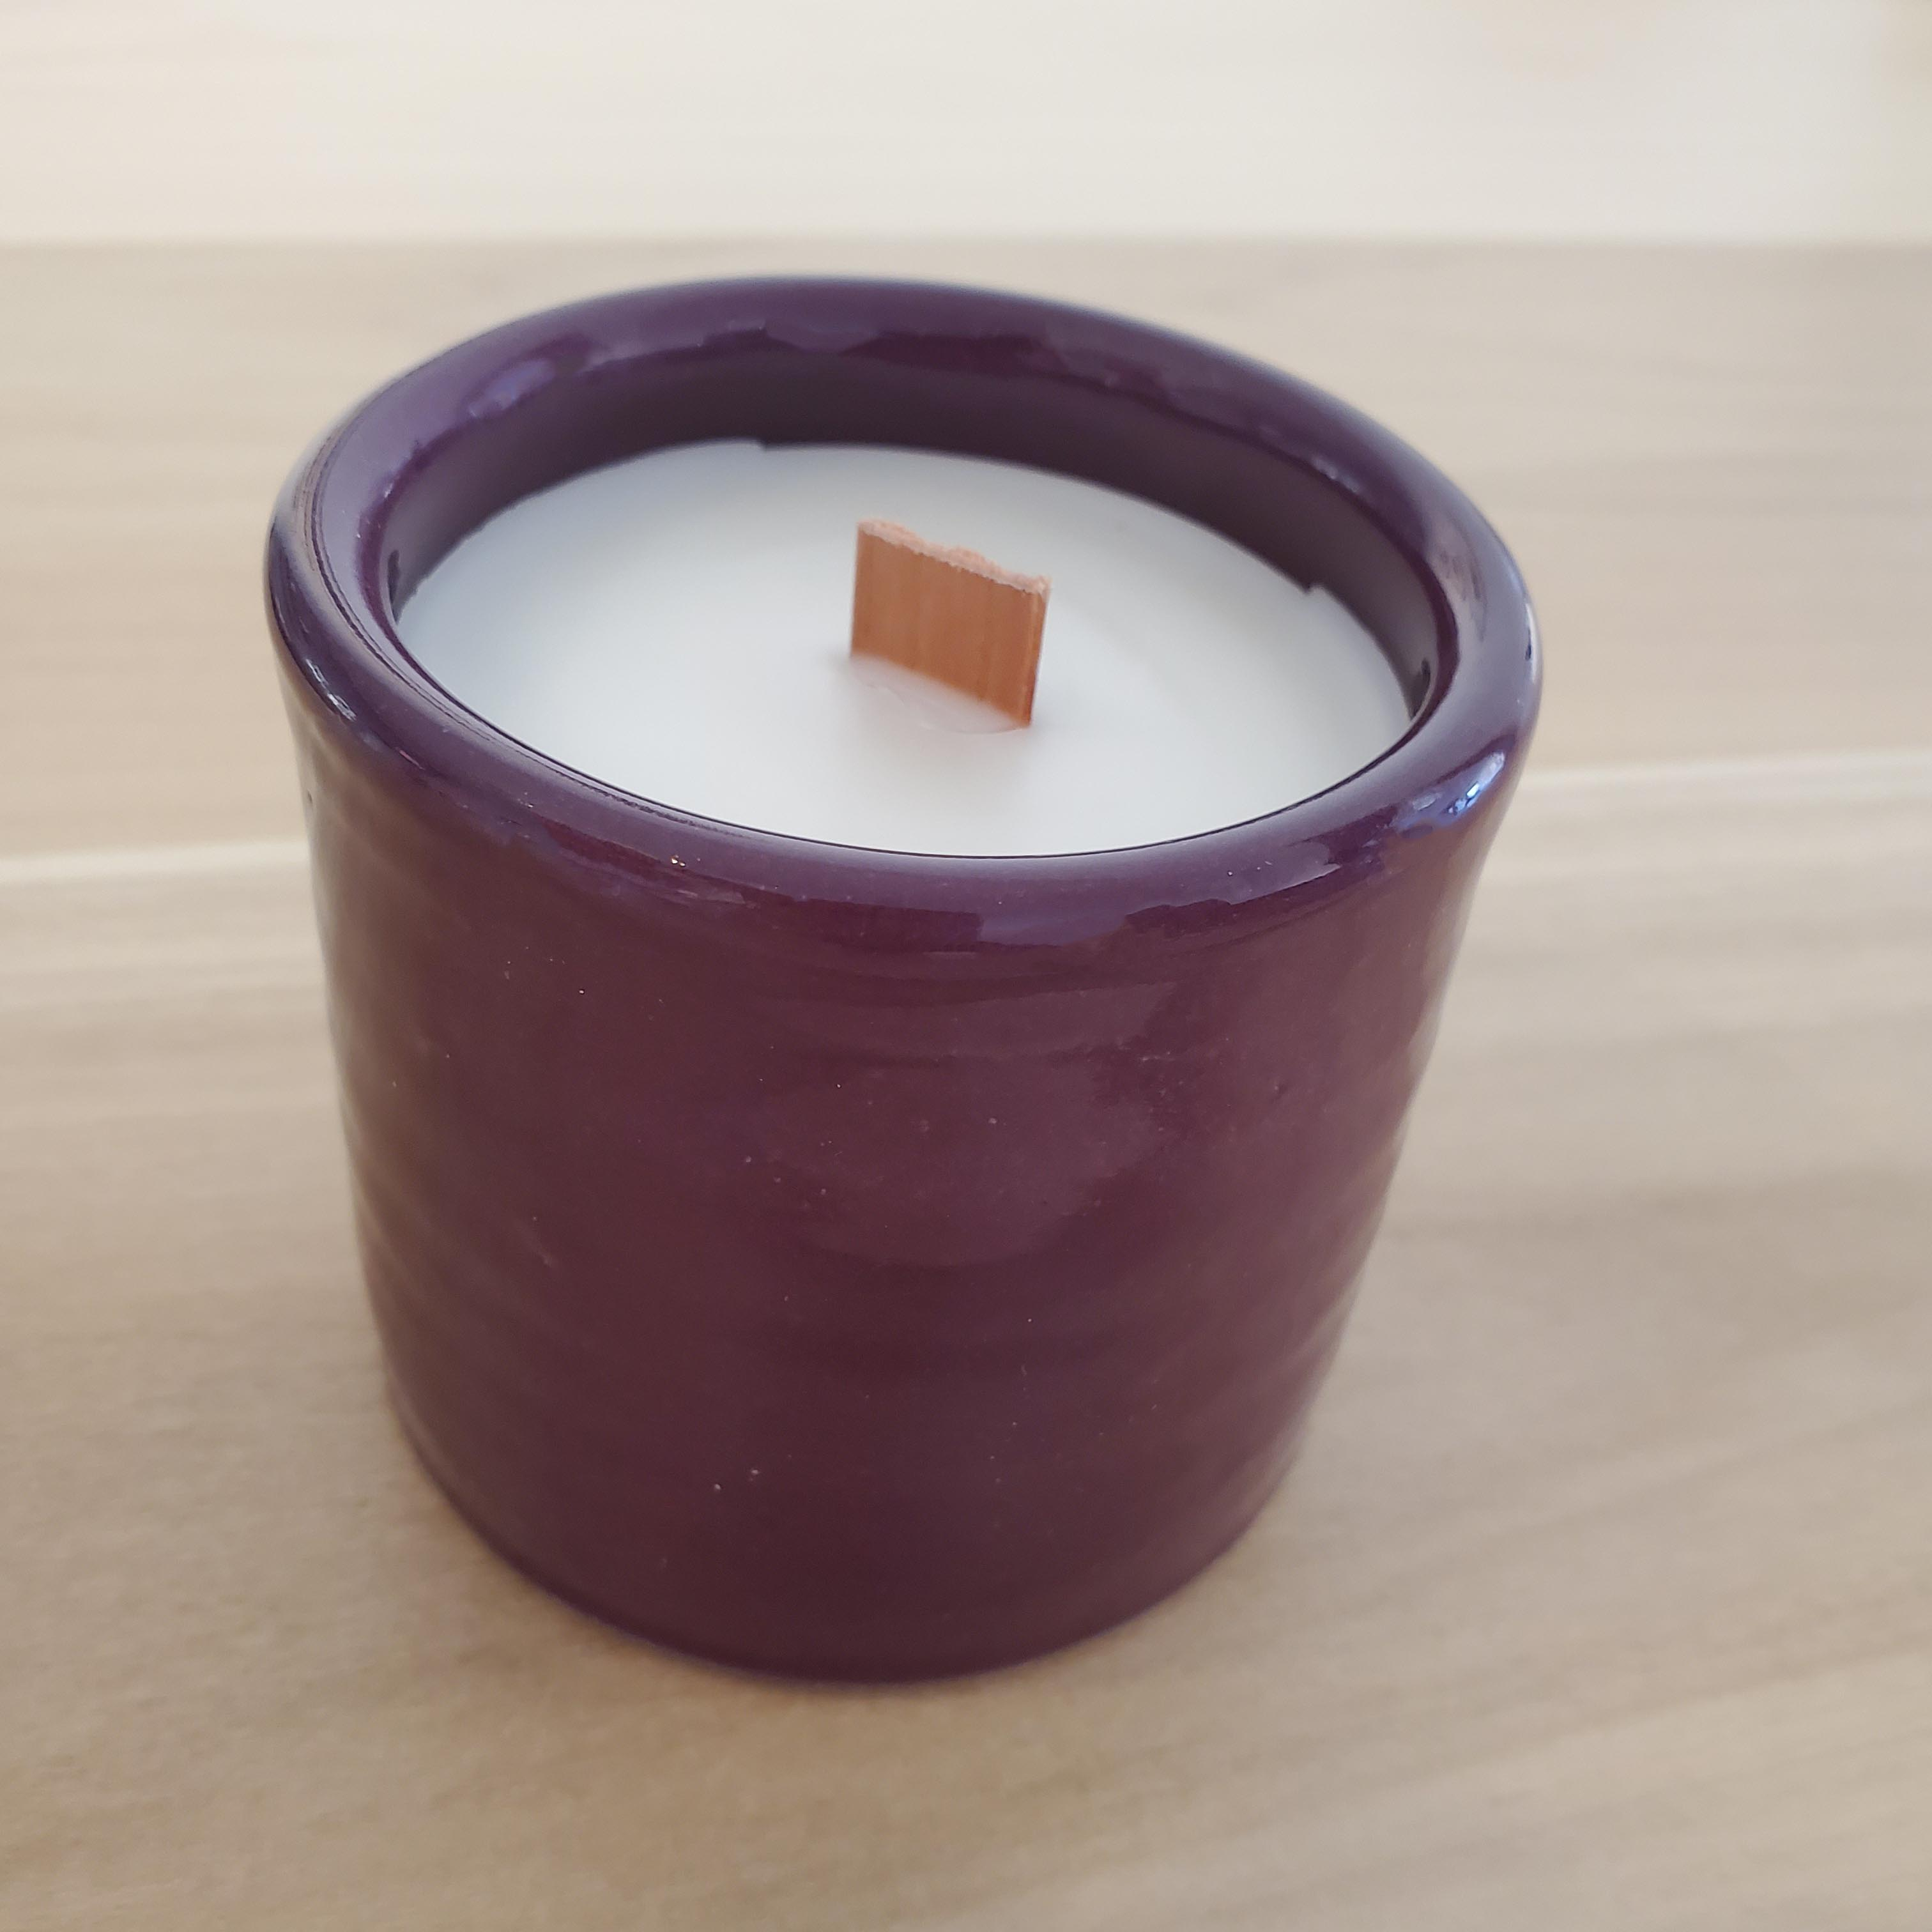 MaD Wax Pottery Candles- Cranberry Spice